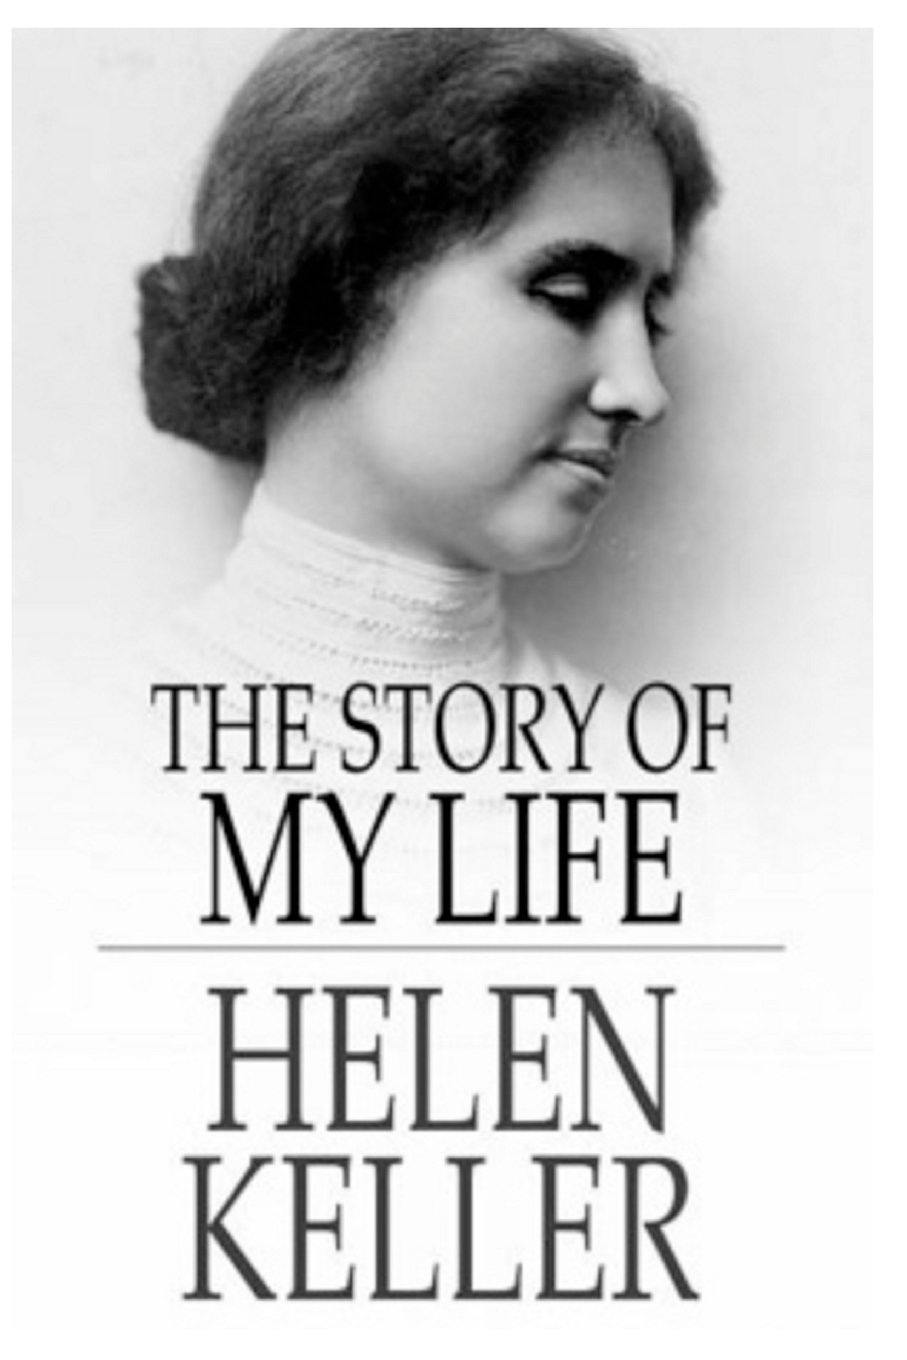 Helen Keller The Story Of My Life Helen Keller   Helen Keller The Story Of My Life Helen Keller   Amazoncom Books Help With Writing A Business Plan also Reflective Essay Thesis Statement Examples  Essay Examples For High School